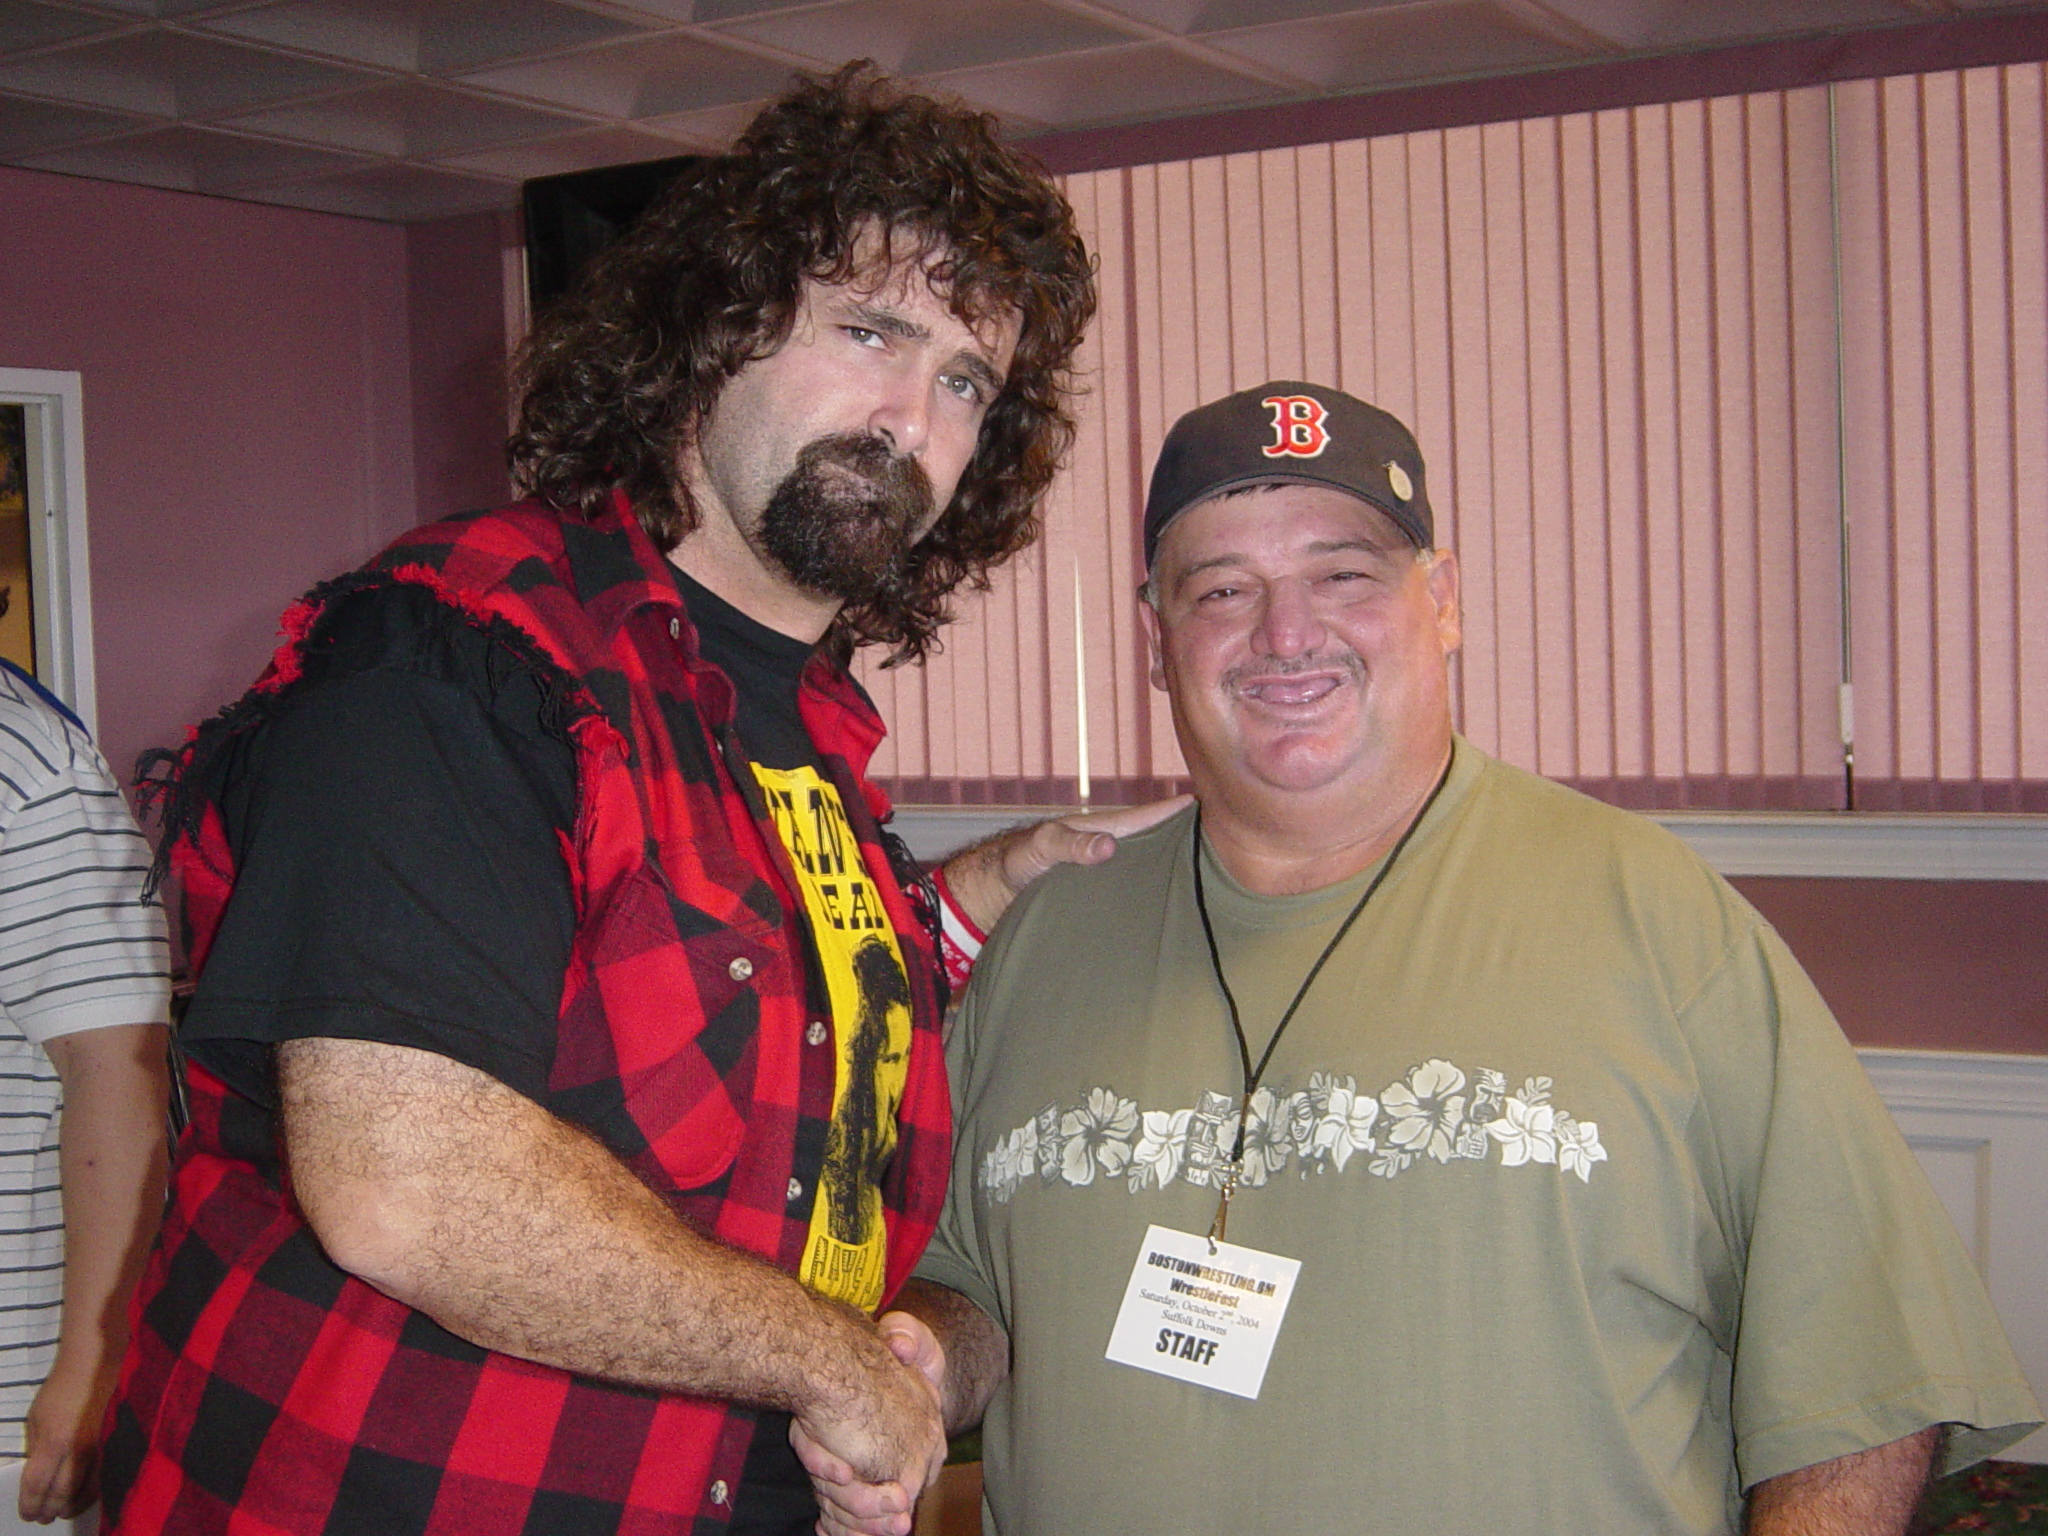 Bull and WWE Legend Mick Foley